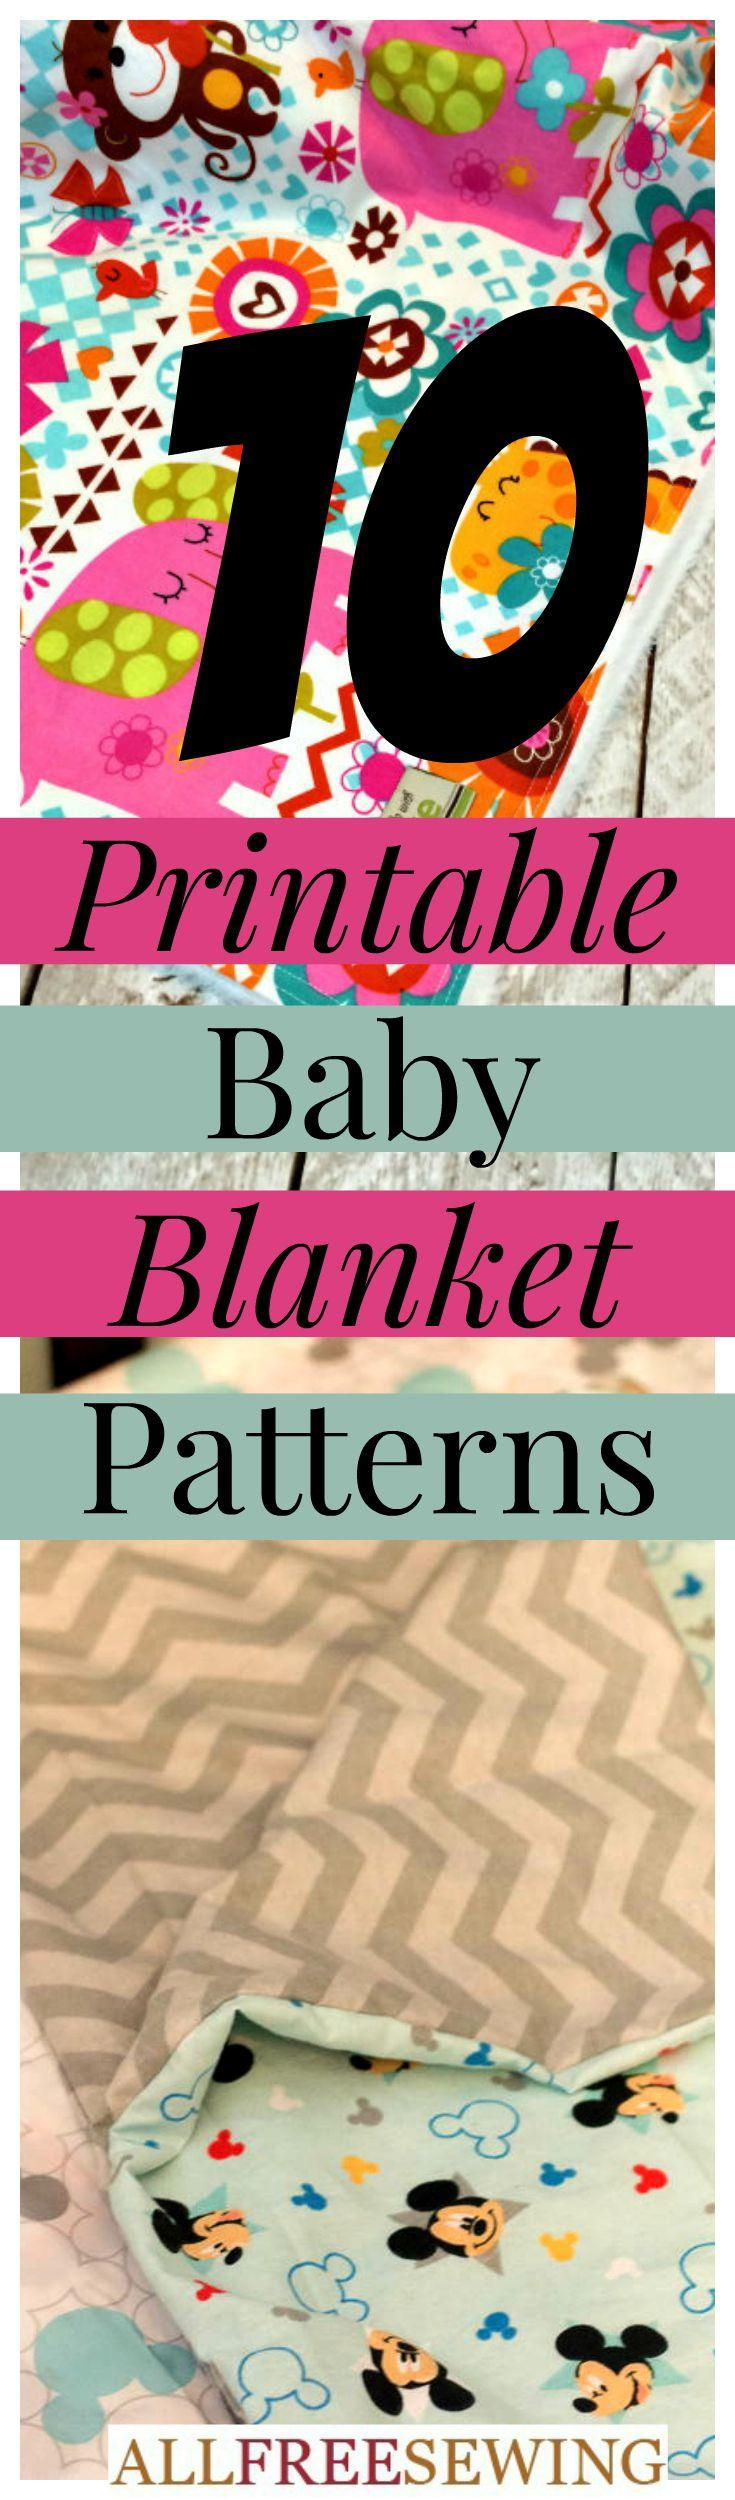 How to Make a Baby Blanket: 10 Baby Blanket Patterns for Sewing | AllFreeSewing.com